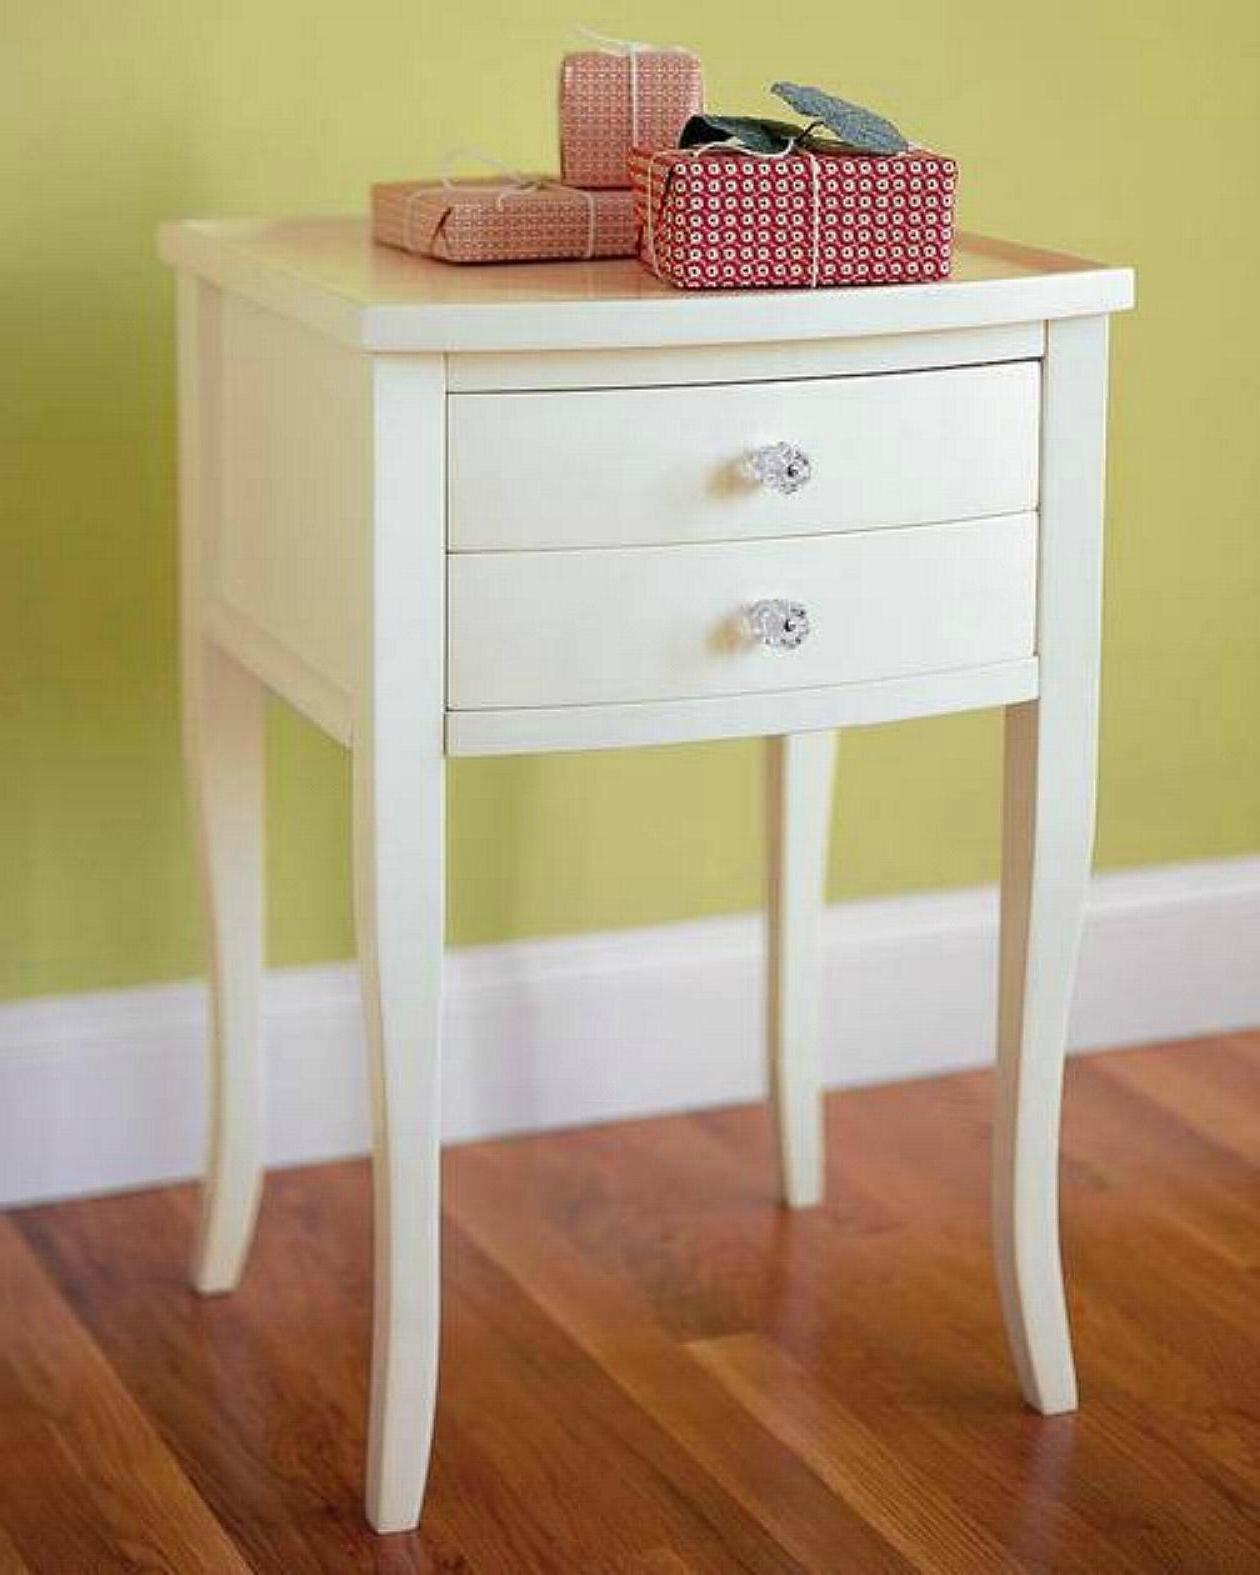 Wooden White Classic Tall Side Table With Drawers  Wd. Bunk Bed Loft With Desk. Immigration Help Desk. Reception Office Desk. Dining Tables. Bunk Bed With Single Futon And Desk. Table Lamps Target. Mainstays L-shaped Desk With Hutch. 6 Drawer Dresser Cheap